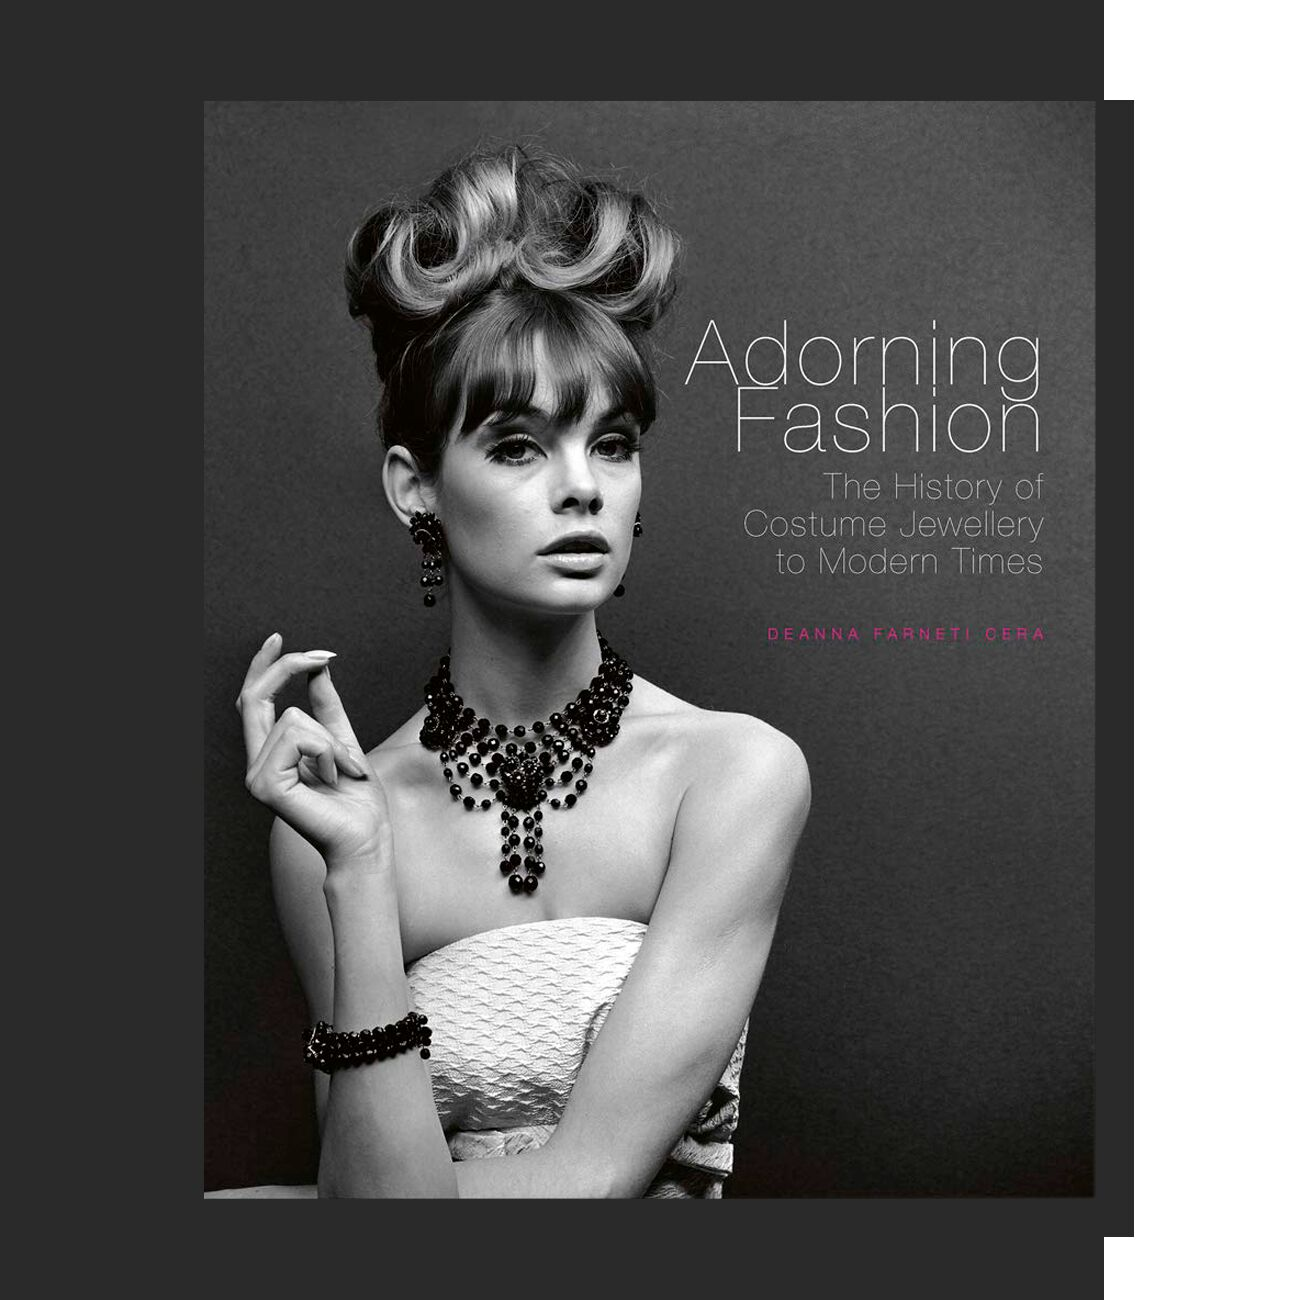 Adorning Fashion. The History of Costume Jewellery to Modern Times